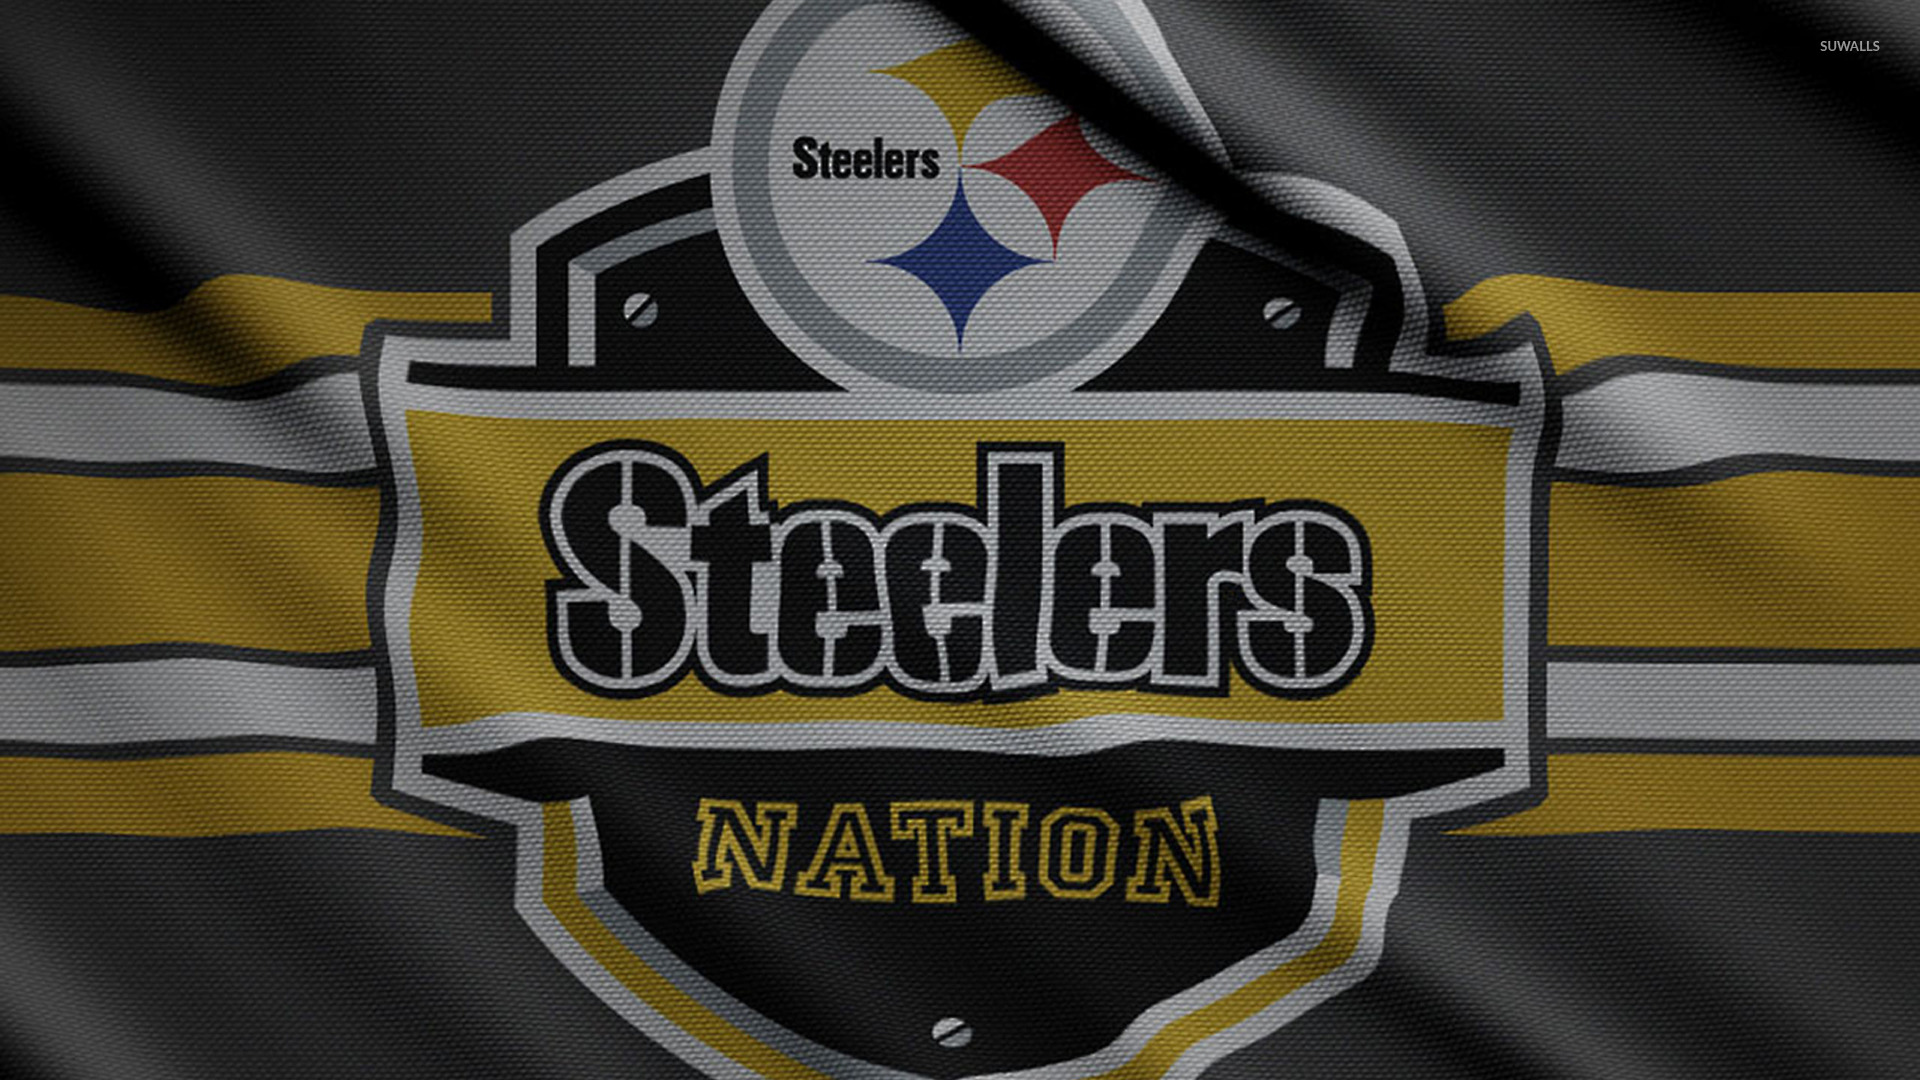 American Football Quotes Wallpaper Pittsburgh Steelers Wallpaper Sport Wallpapers 34159